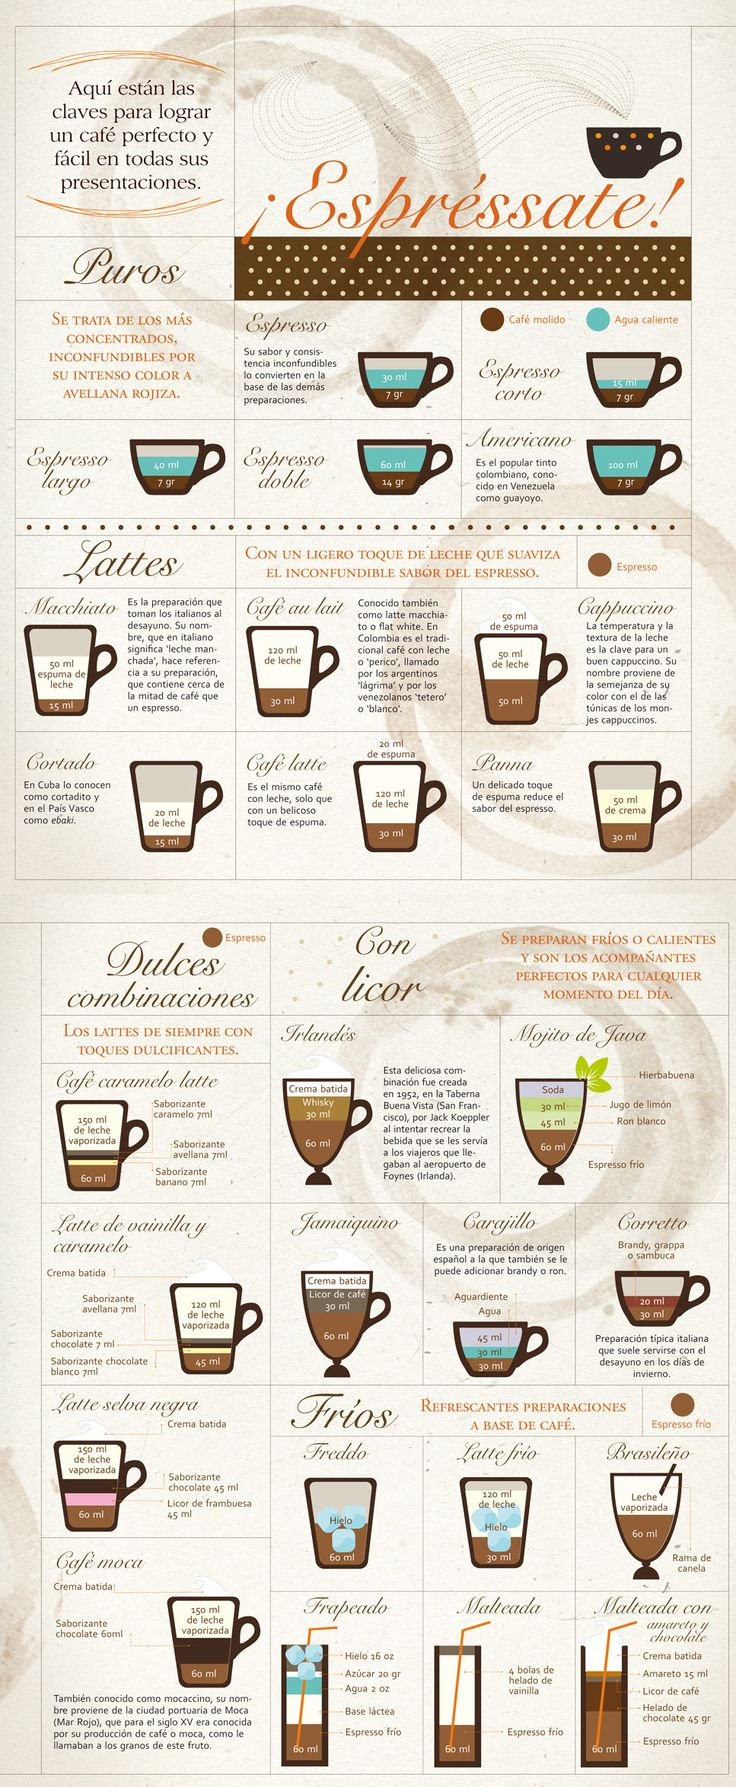 Ingredientes - Medidas para lograr un café perfecto, perfect coffee